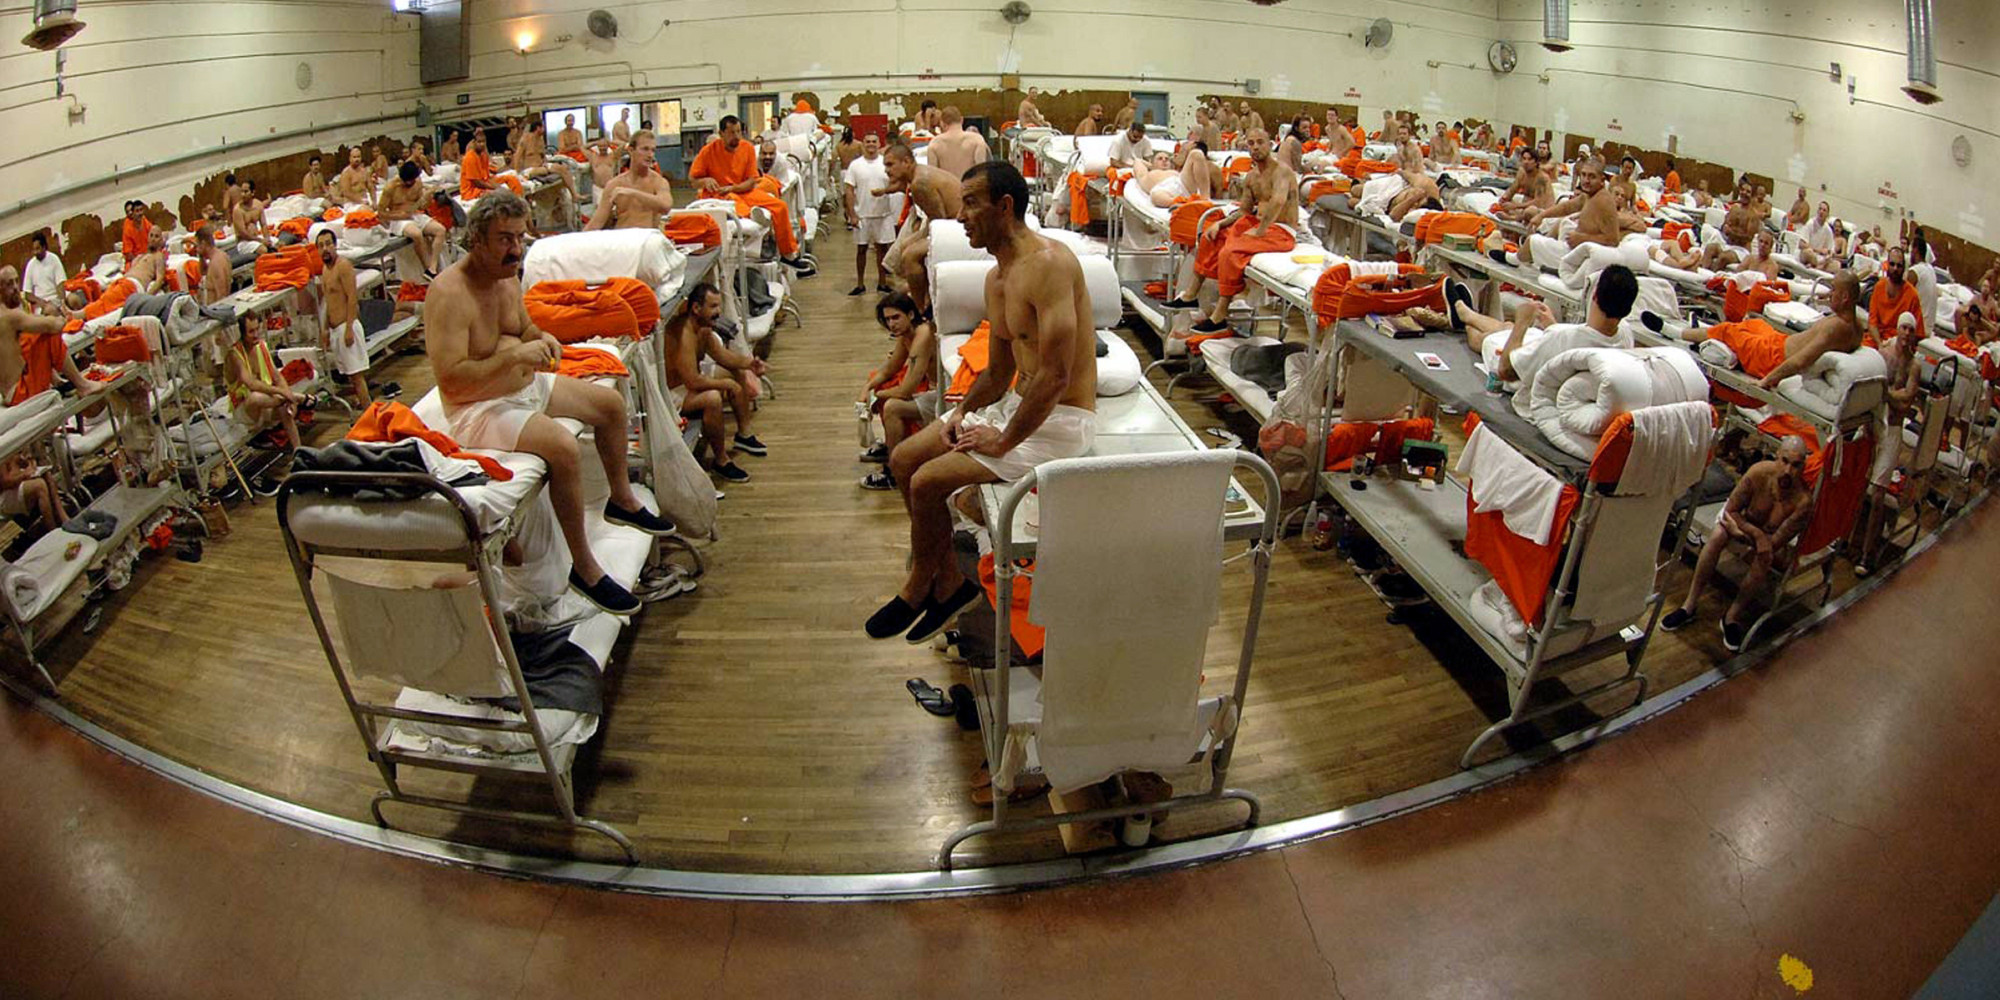 an essay on overpopulation in the prisons of america The overcrowding of prisons essays  prison overcrowding in america's tough economic society, over population has become an exceedingly hot topic issue however .